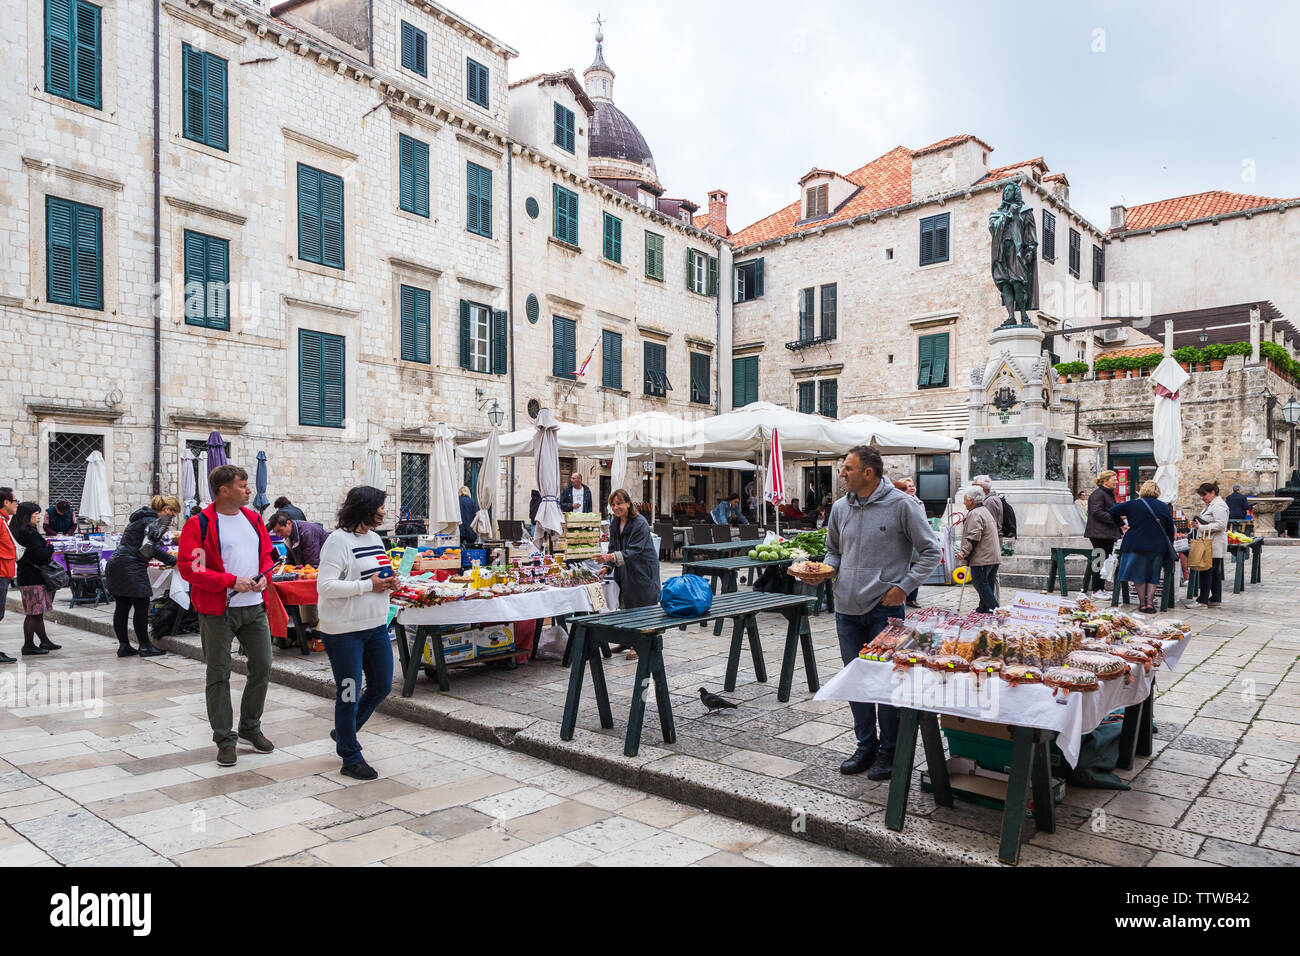 04  May 2019, Dubrovnik, Croatia. Old city architecture, citys market - Stock Image